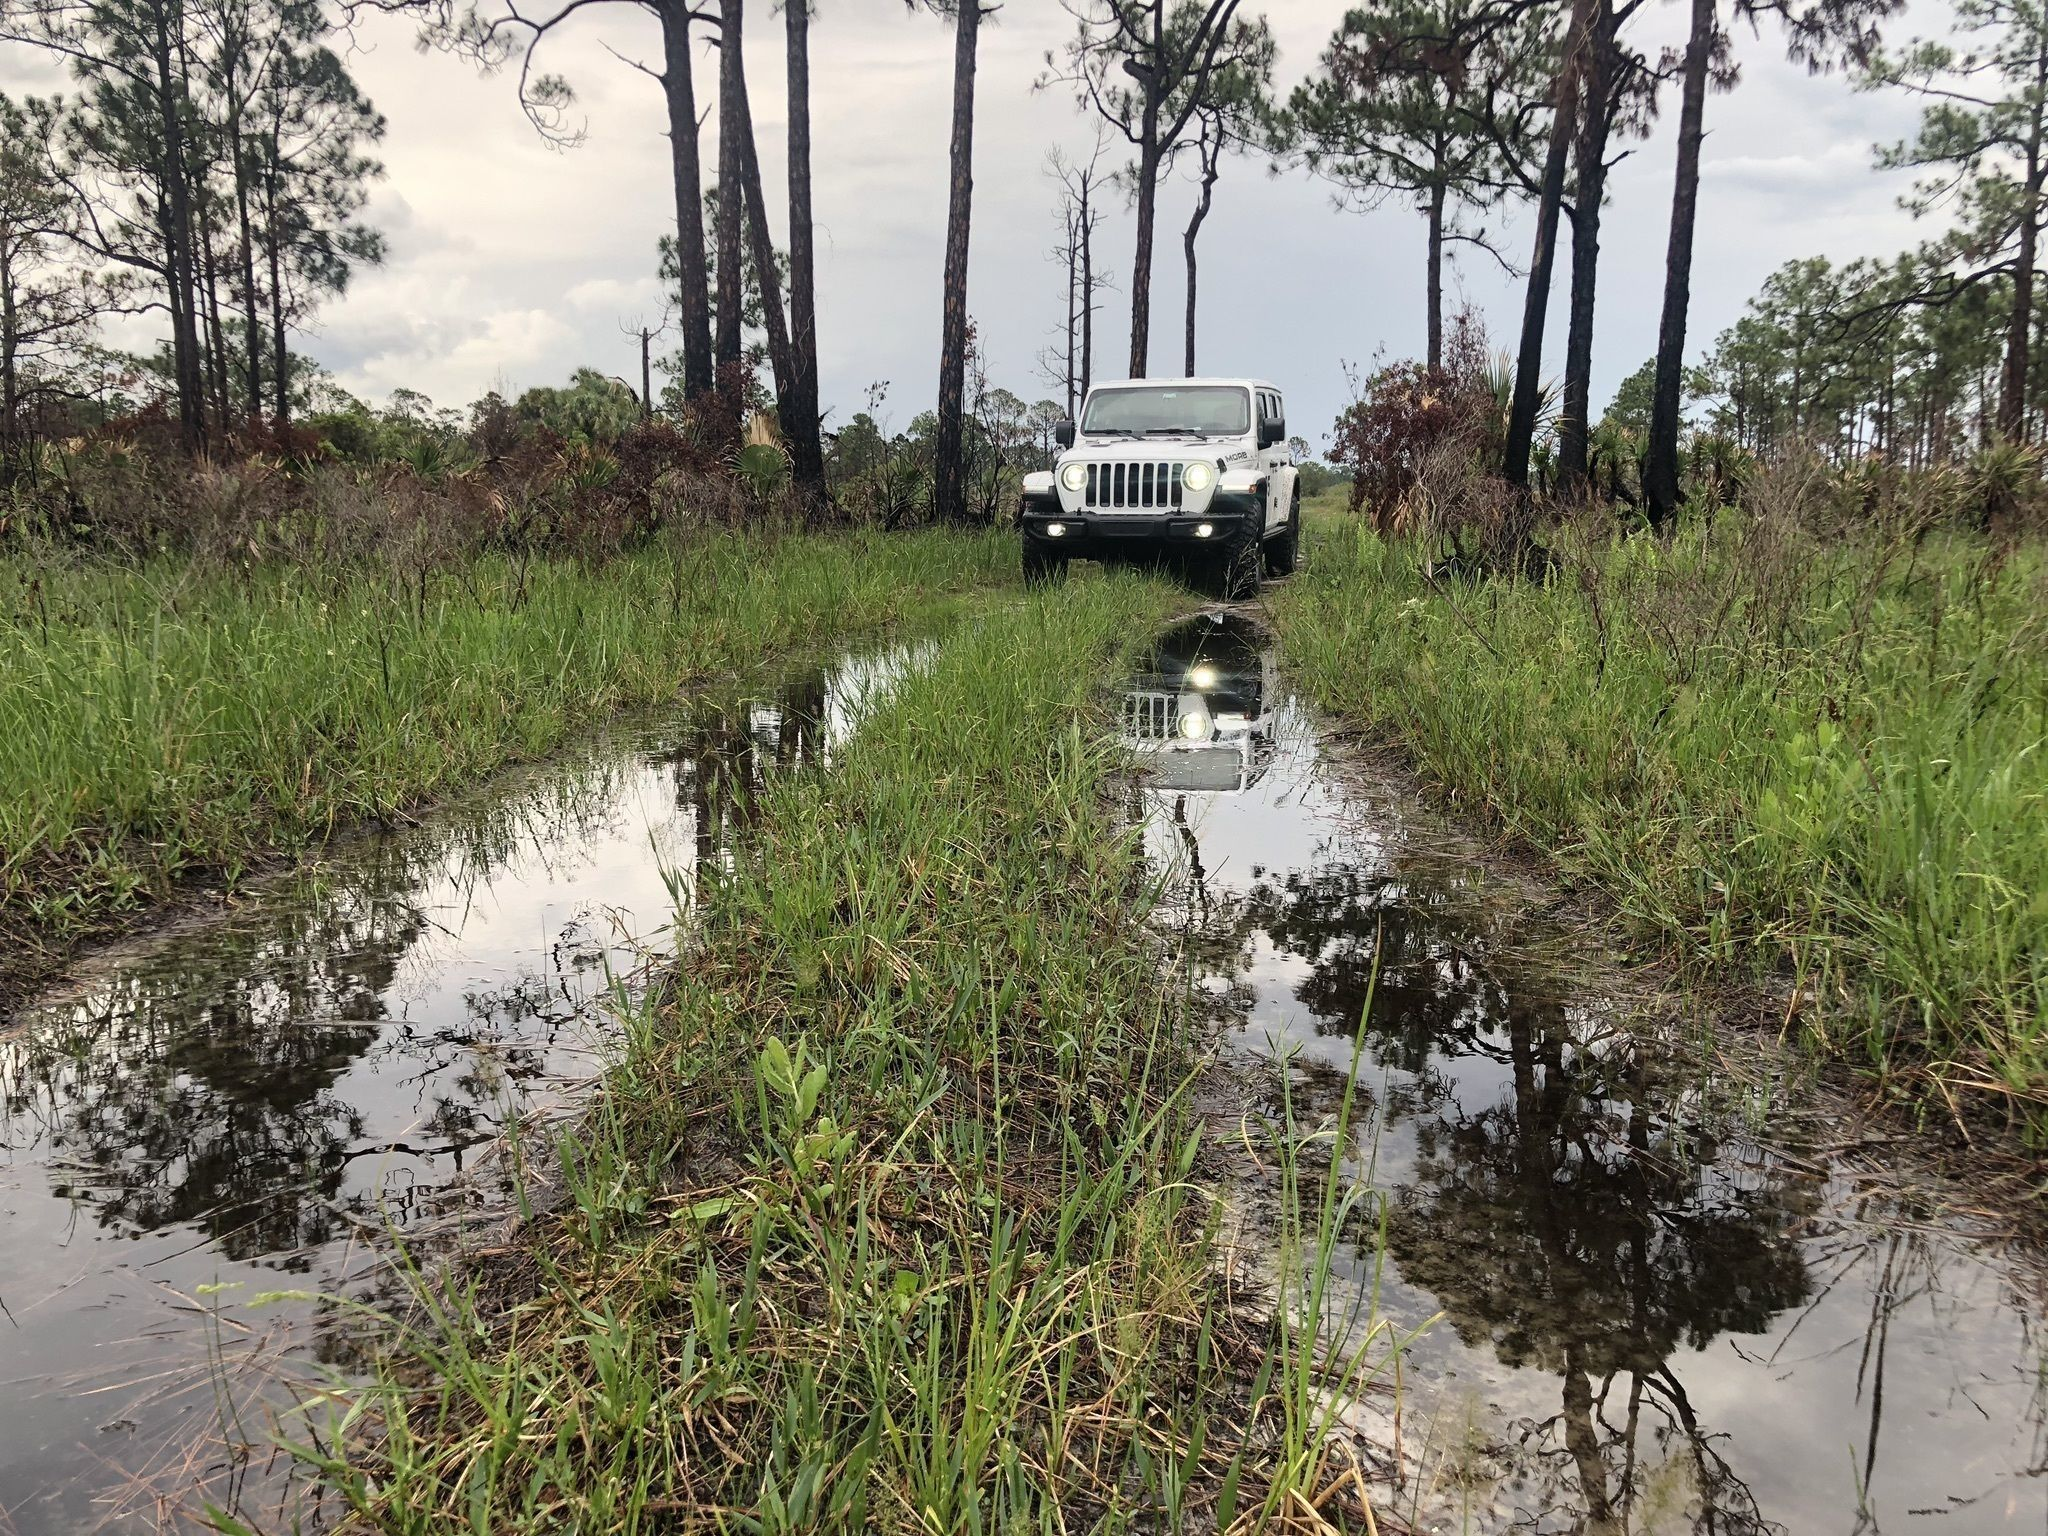 Best Off Road Driving Trails in Florida | AllTrails